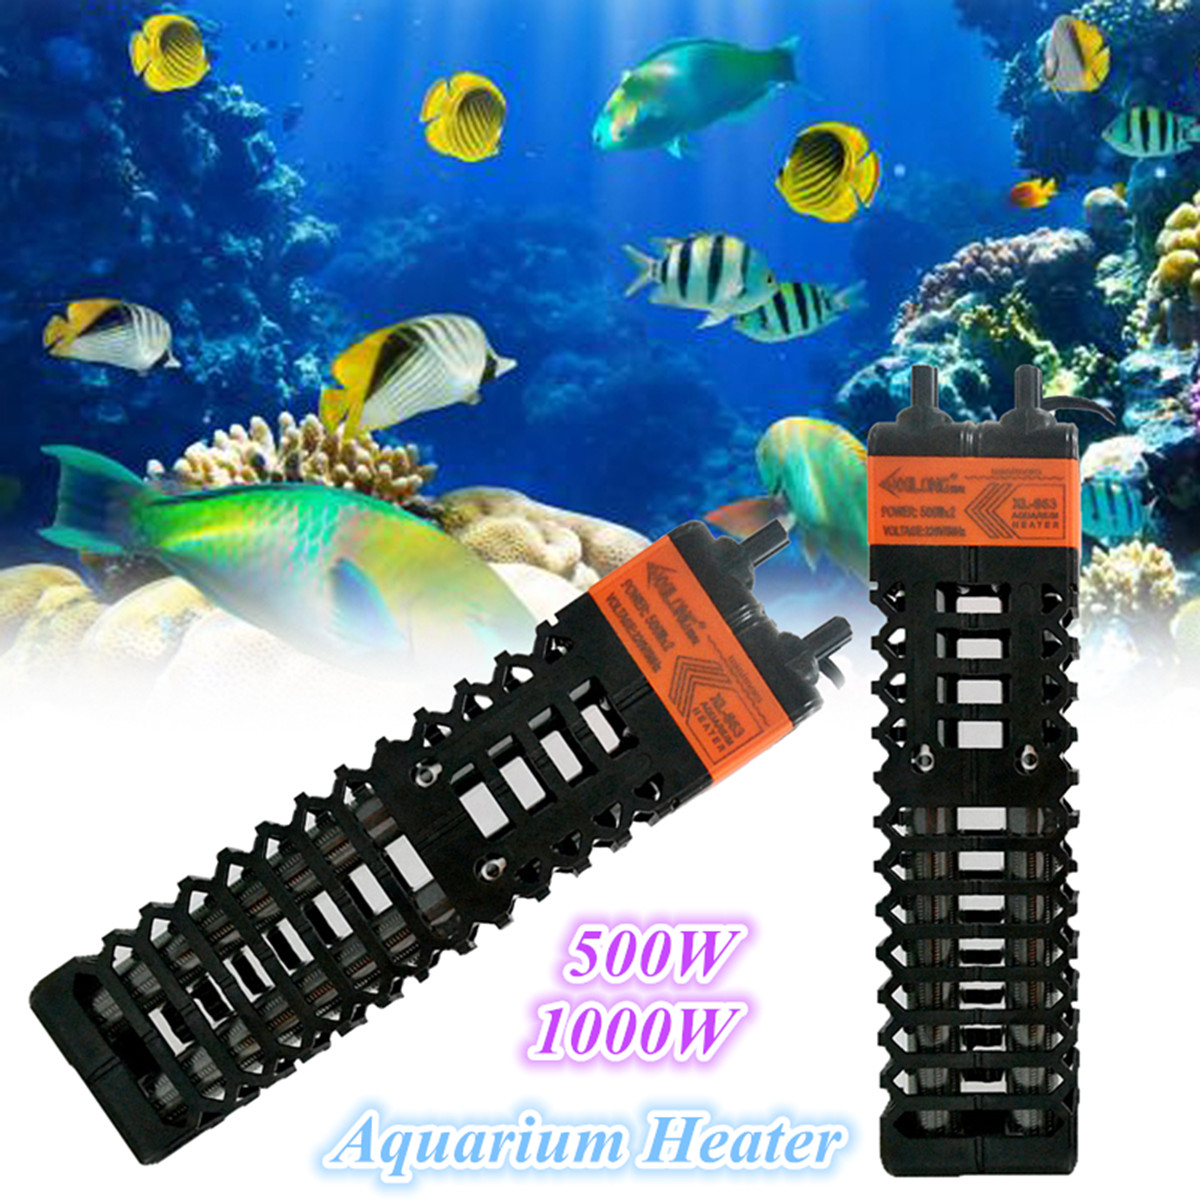 Moaere Submersible Aquarium Heater 250-500W with Thermometer and Suction Cup